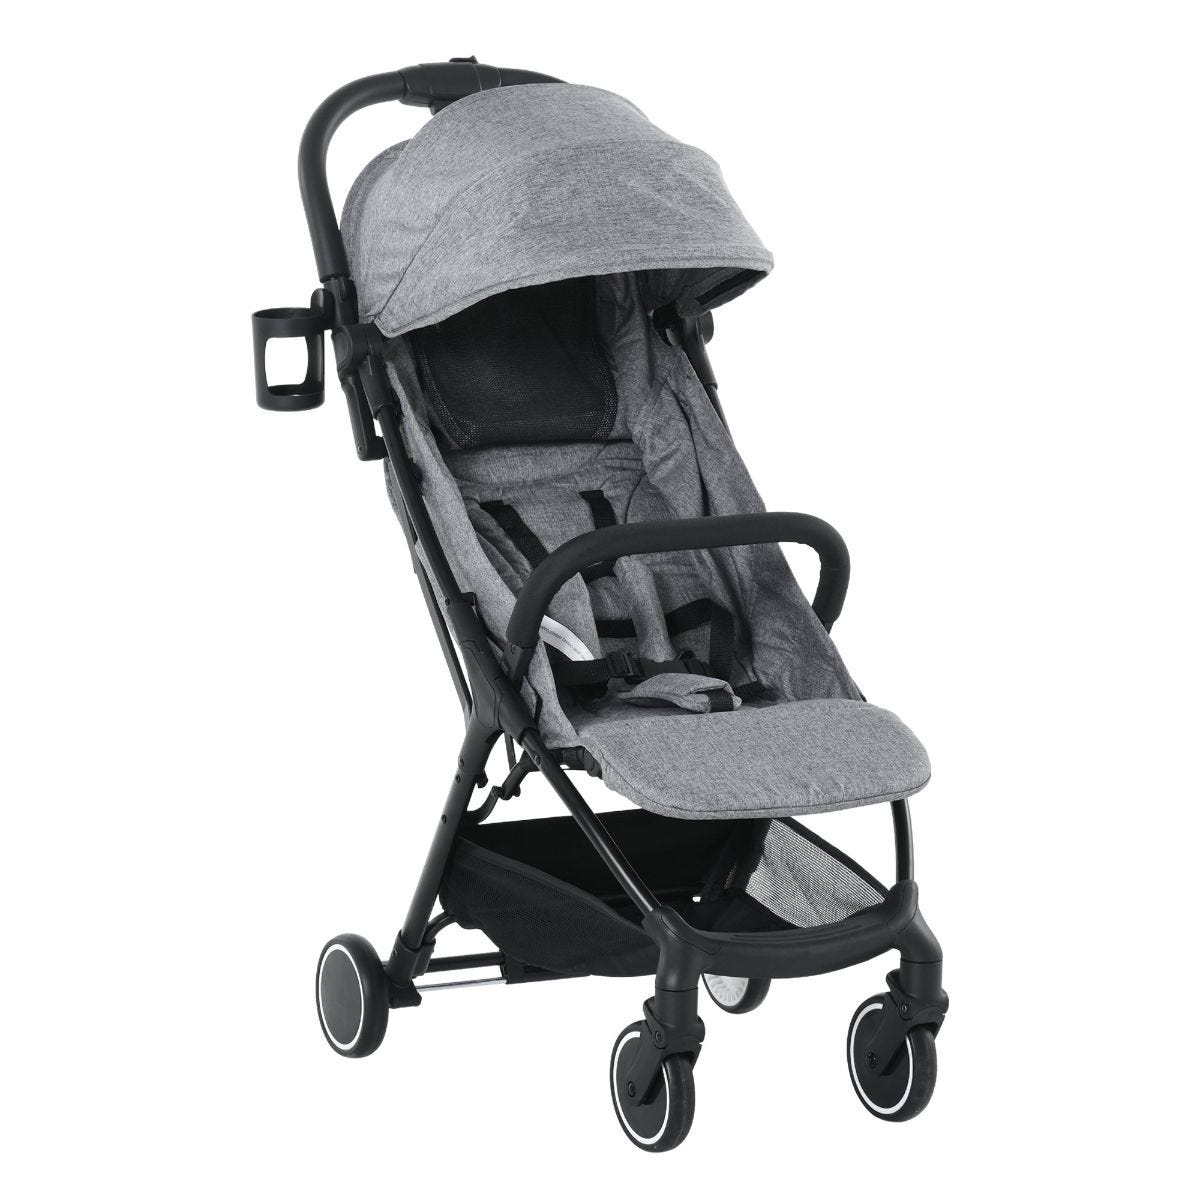 HOMCOM Baby Stroller Five Point Harness Foldable Pushchair for 0 To 36 Months Grey